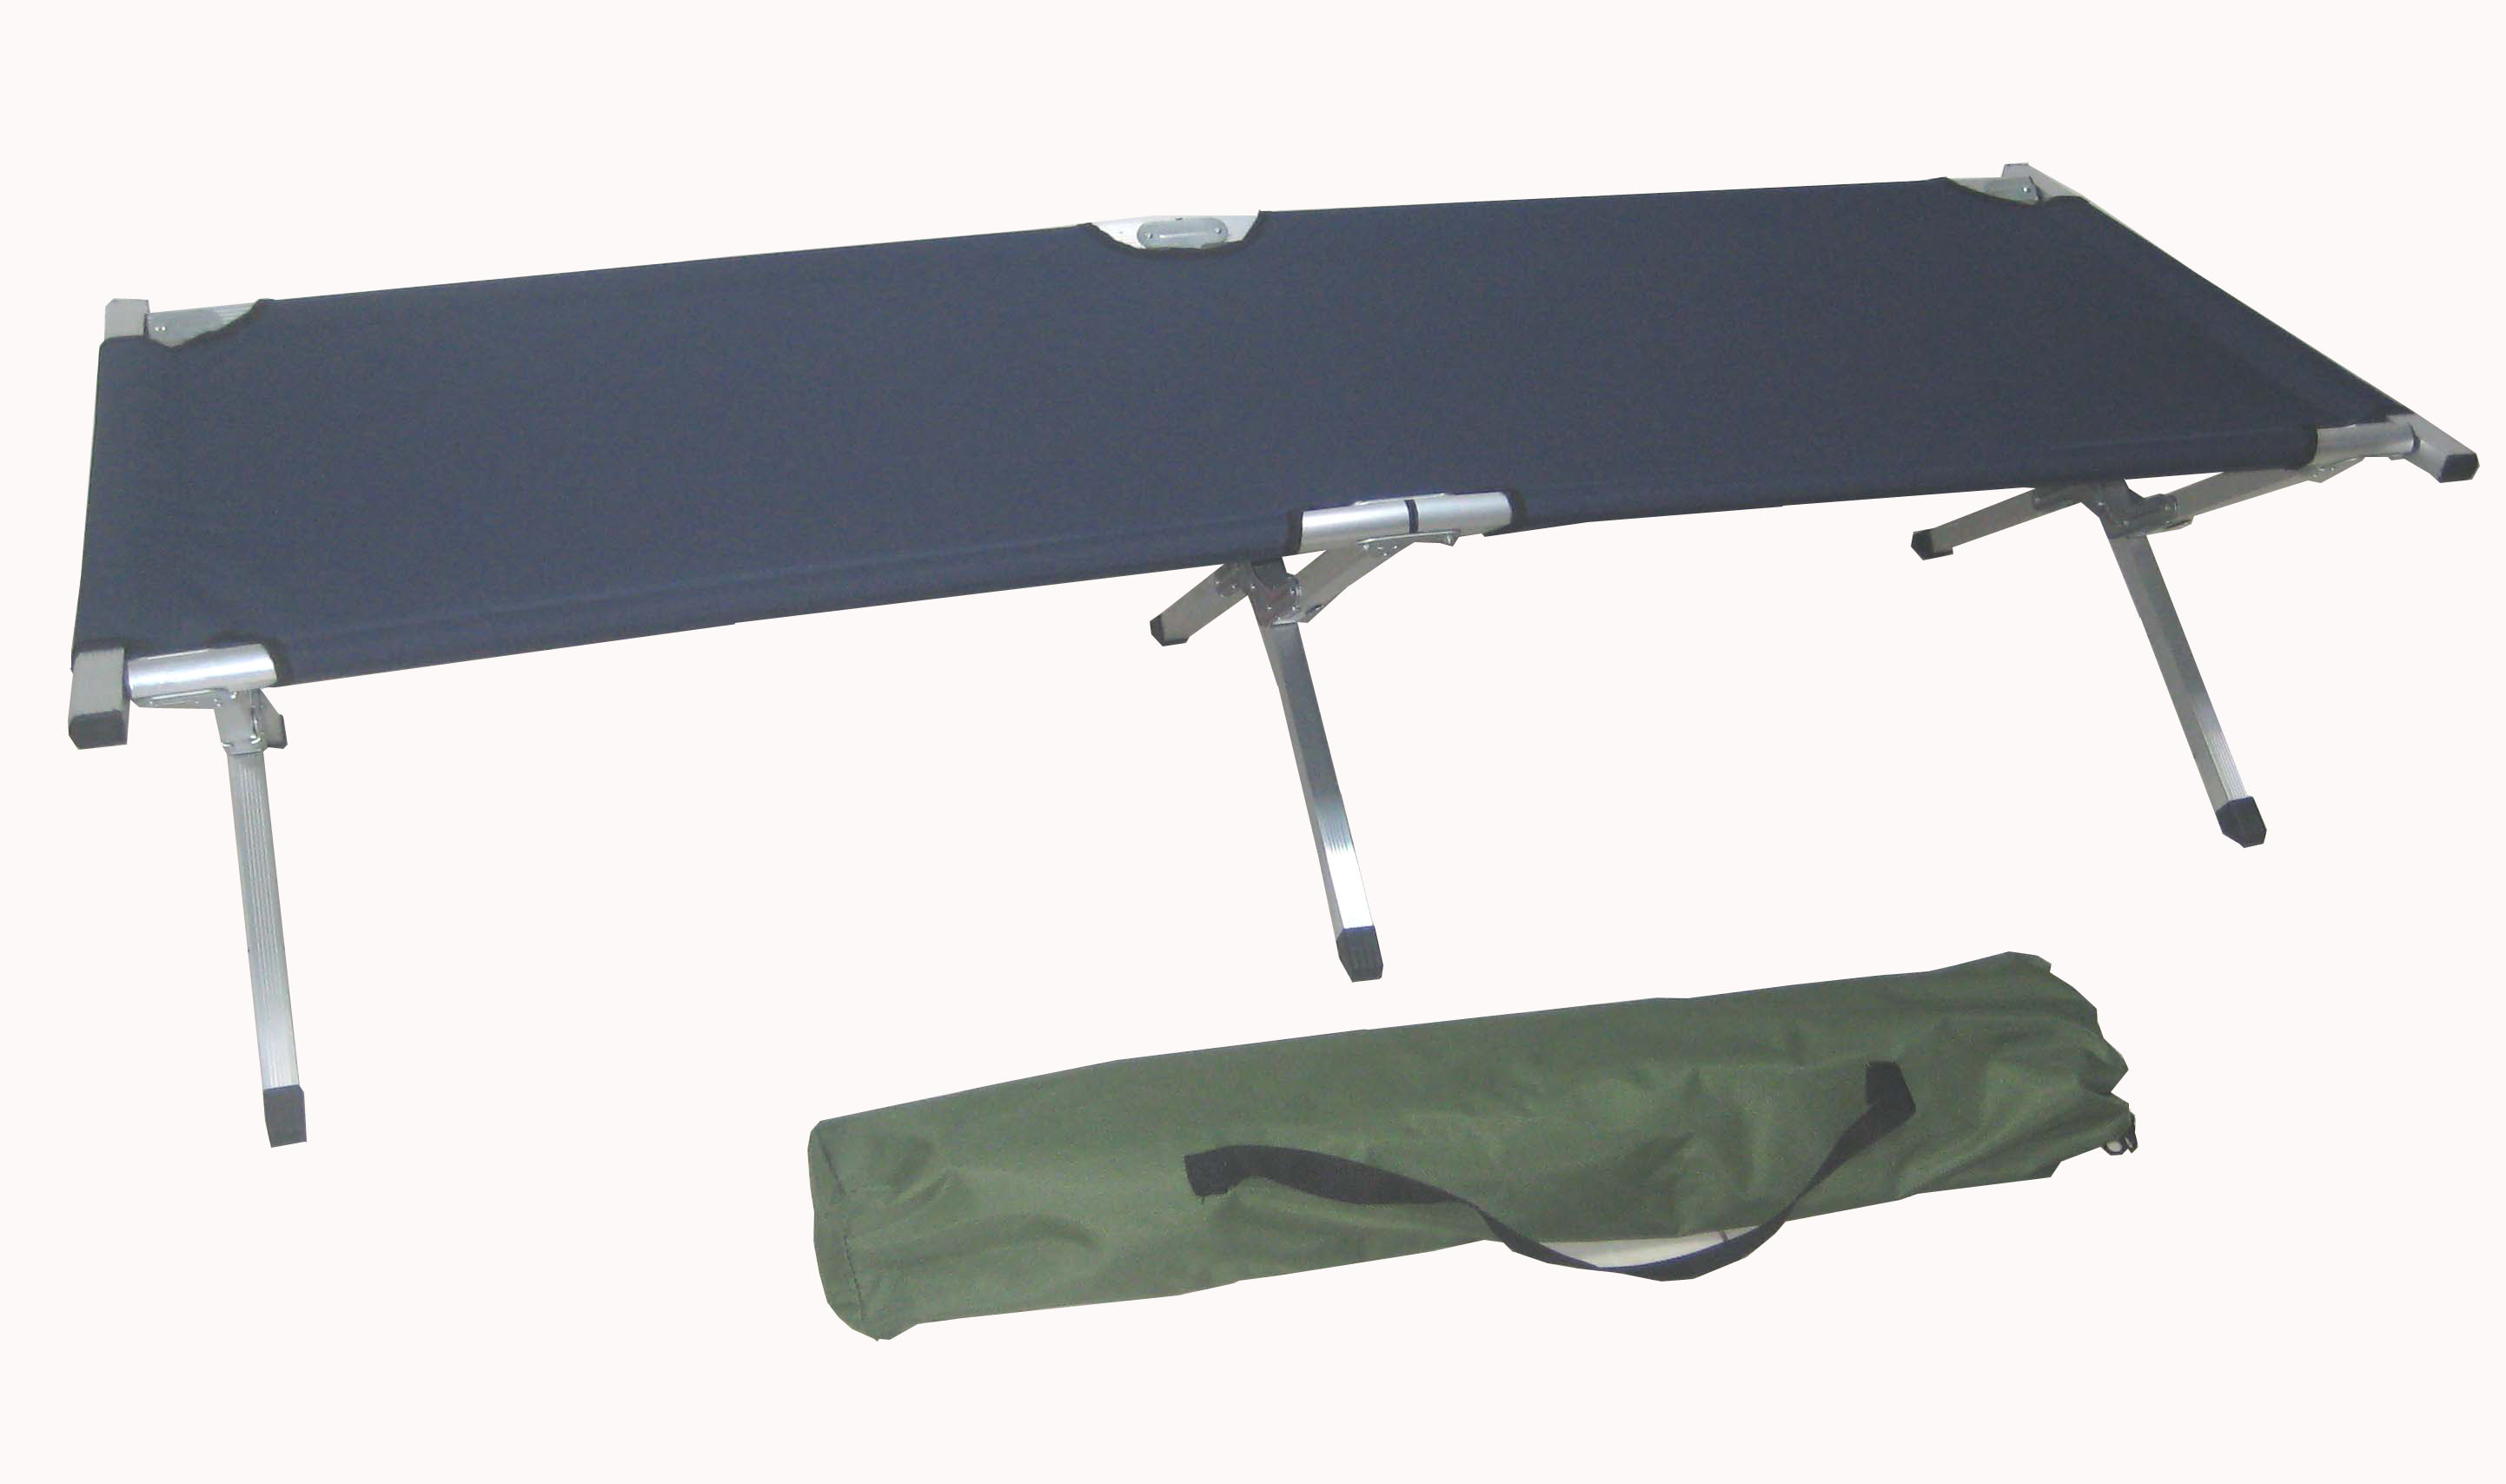 600D Polyester Lightweight Metal Travel Folding Bed Military Army Cots Camping Bed